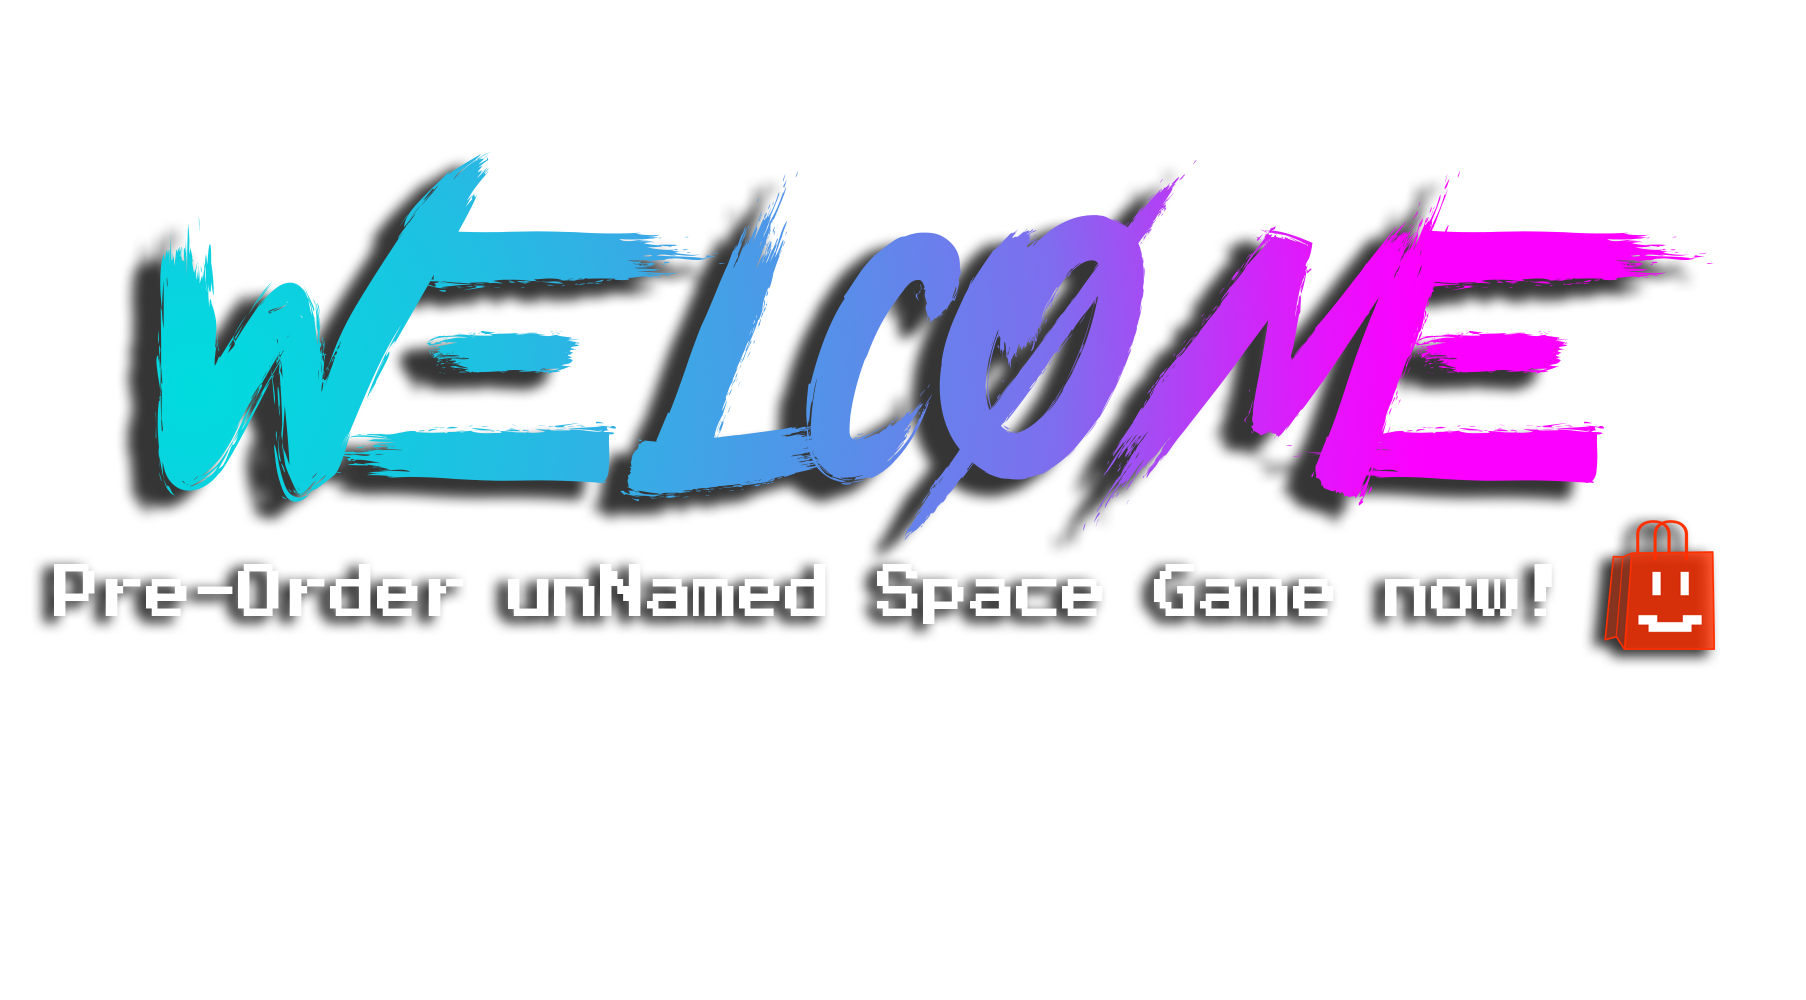 boston games logo with space game in background